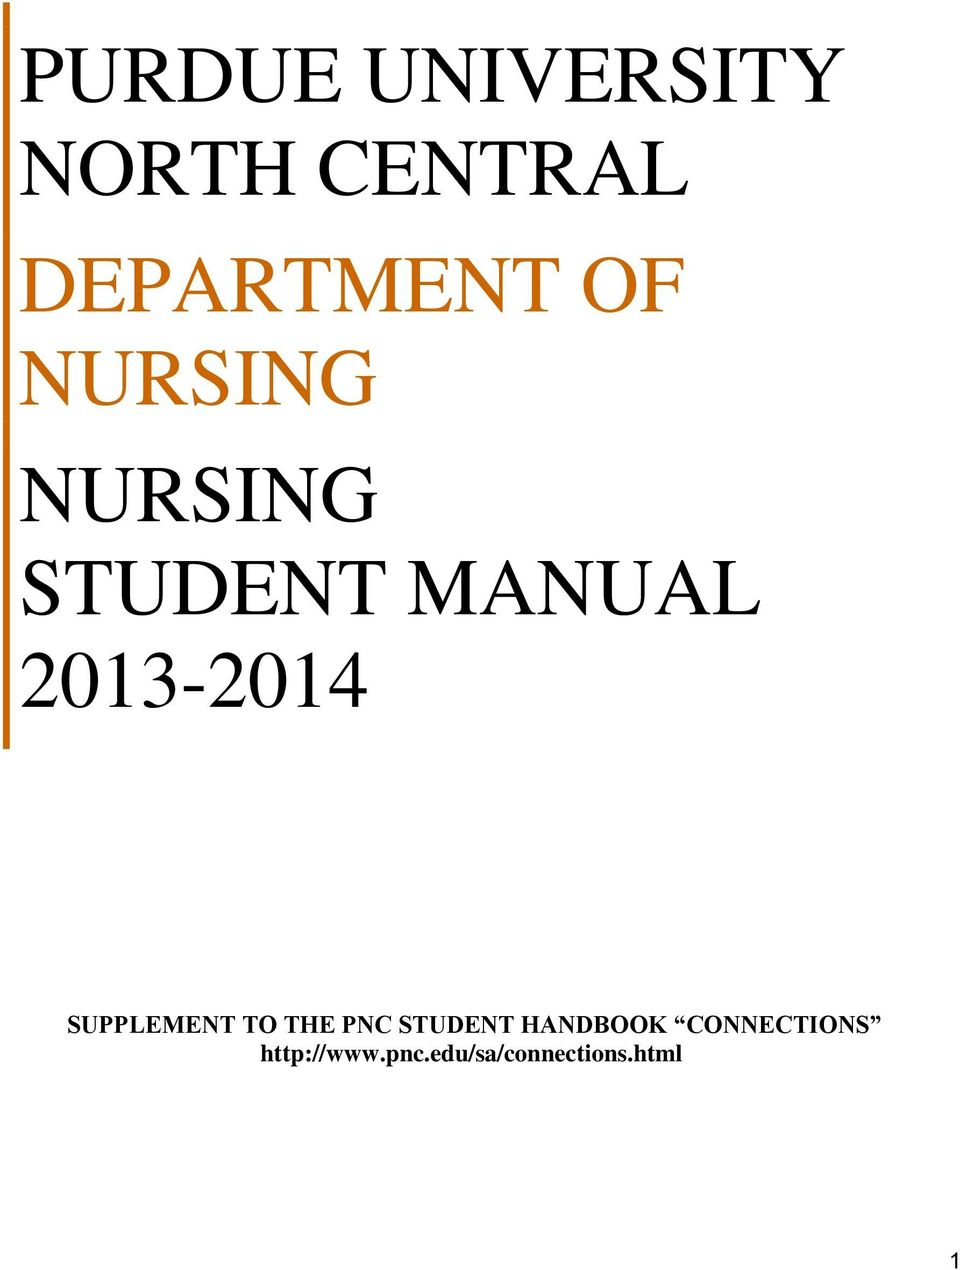 SUPPLEMENT TO THE PNC STUDENT HANDBOOK